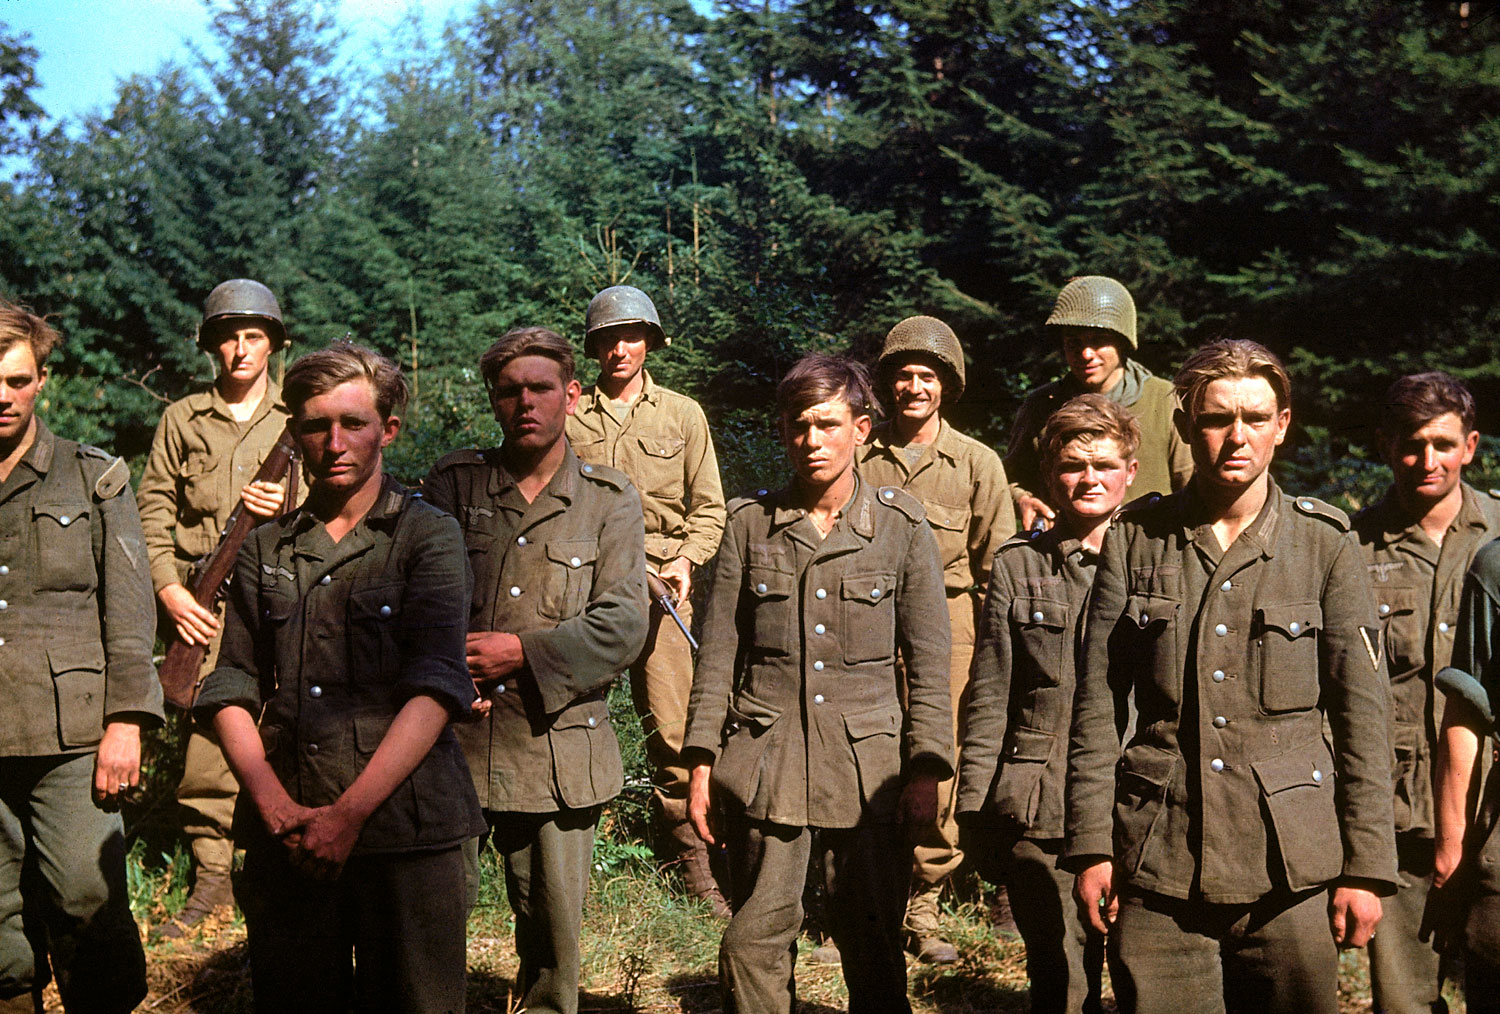 From D-Day until Christmas 1944, German prisoners of war were shipped off to American detention facilities at a rate of 30,000 per month. Above: Captured German troops, June 1944.